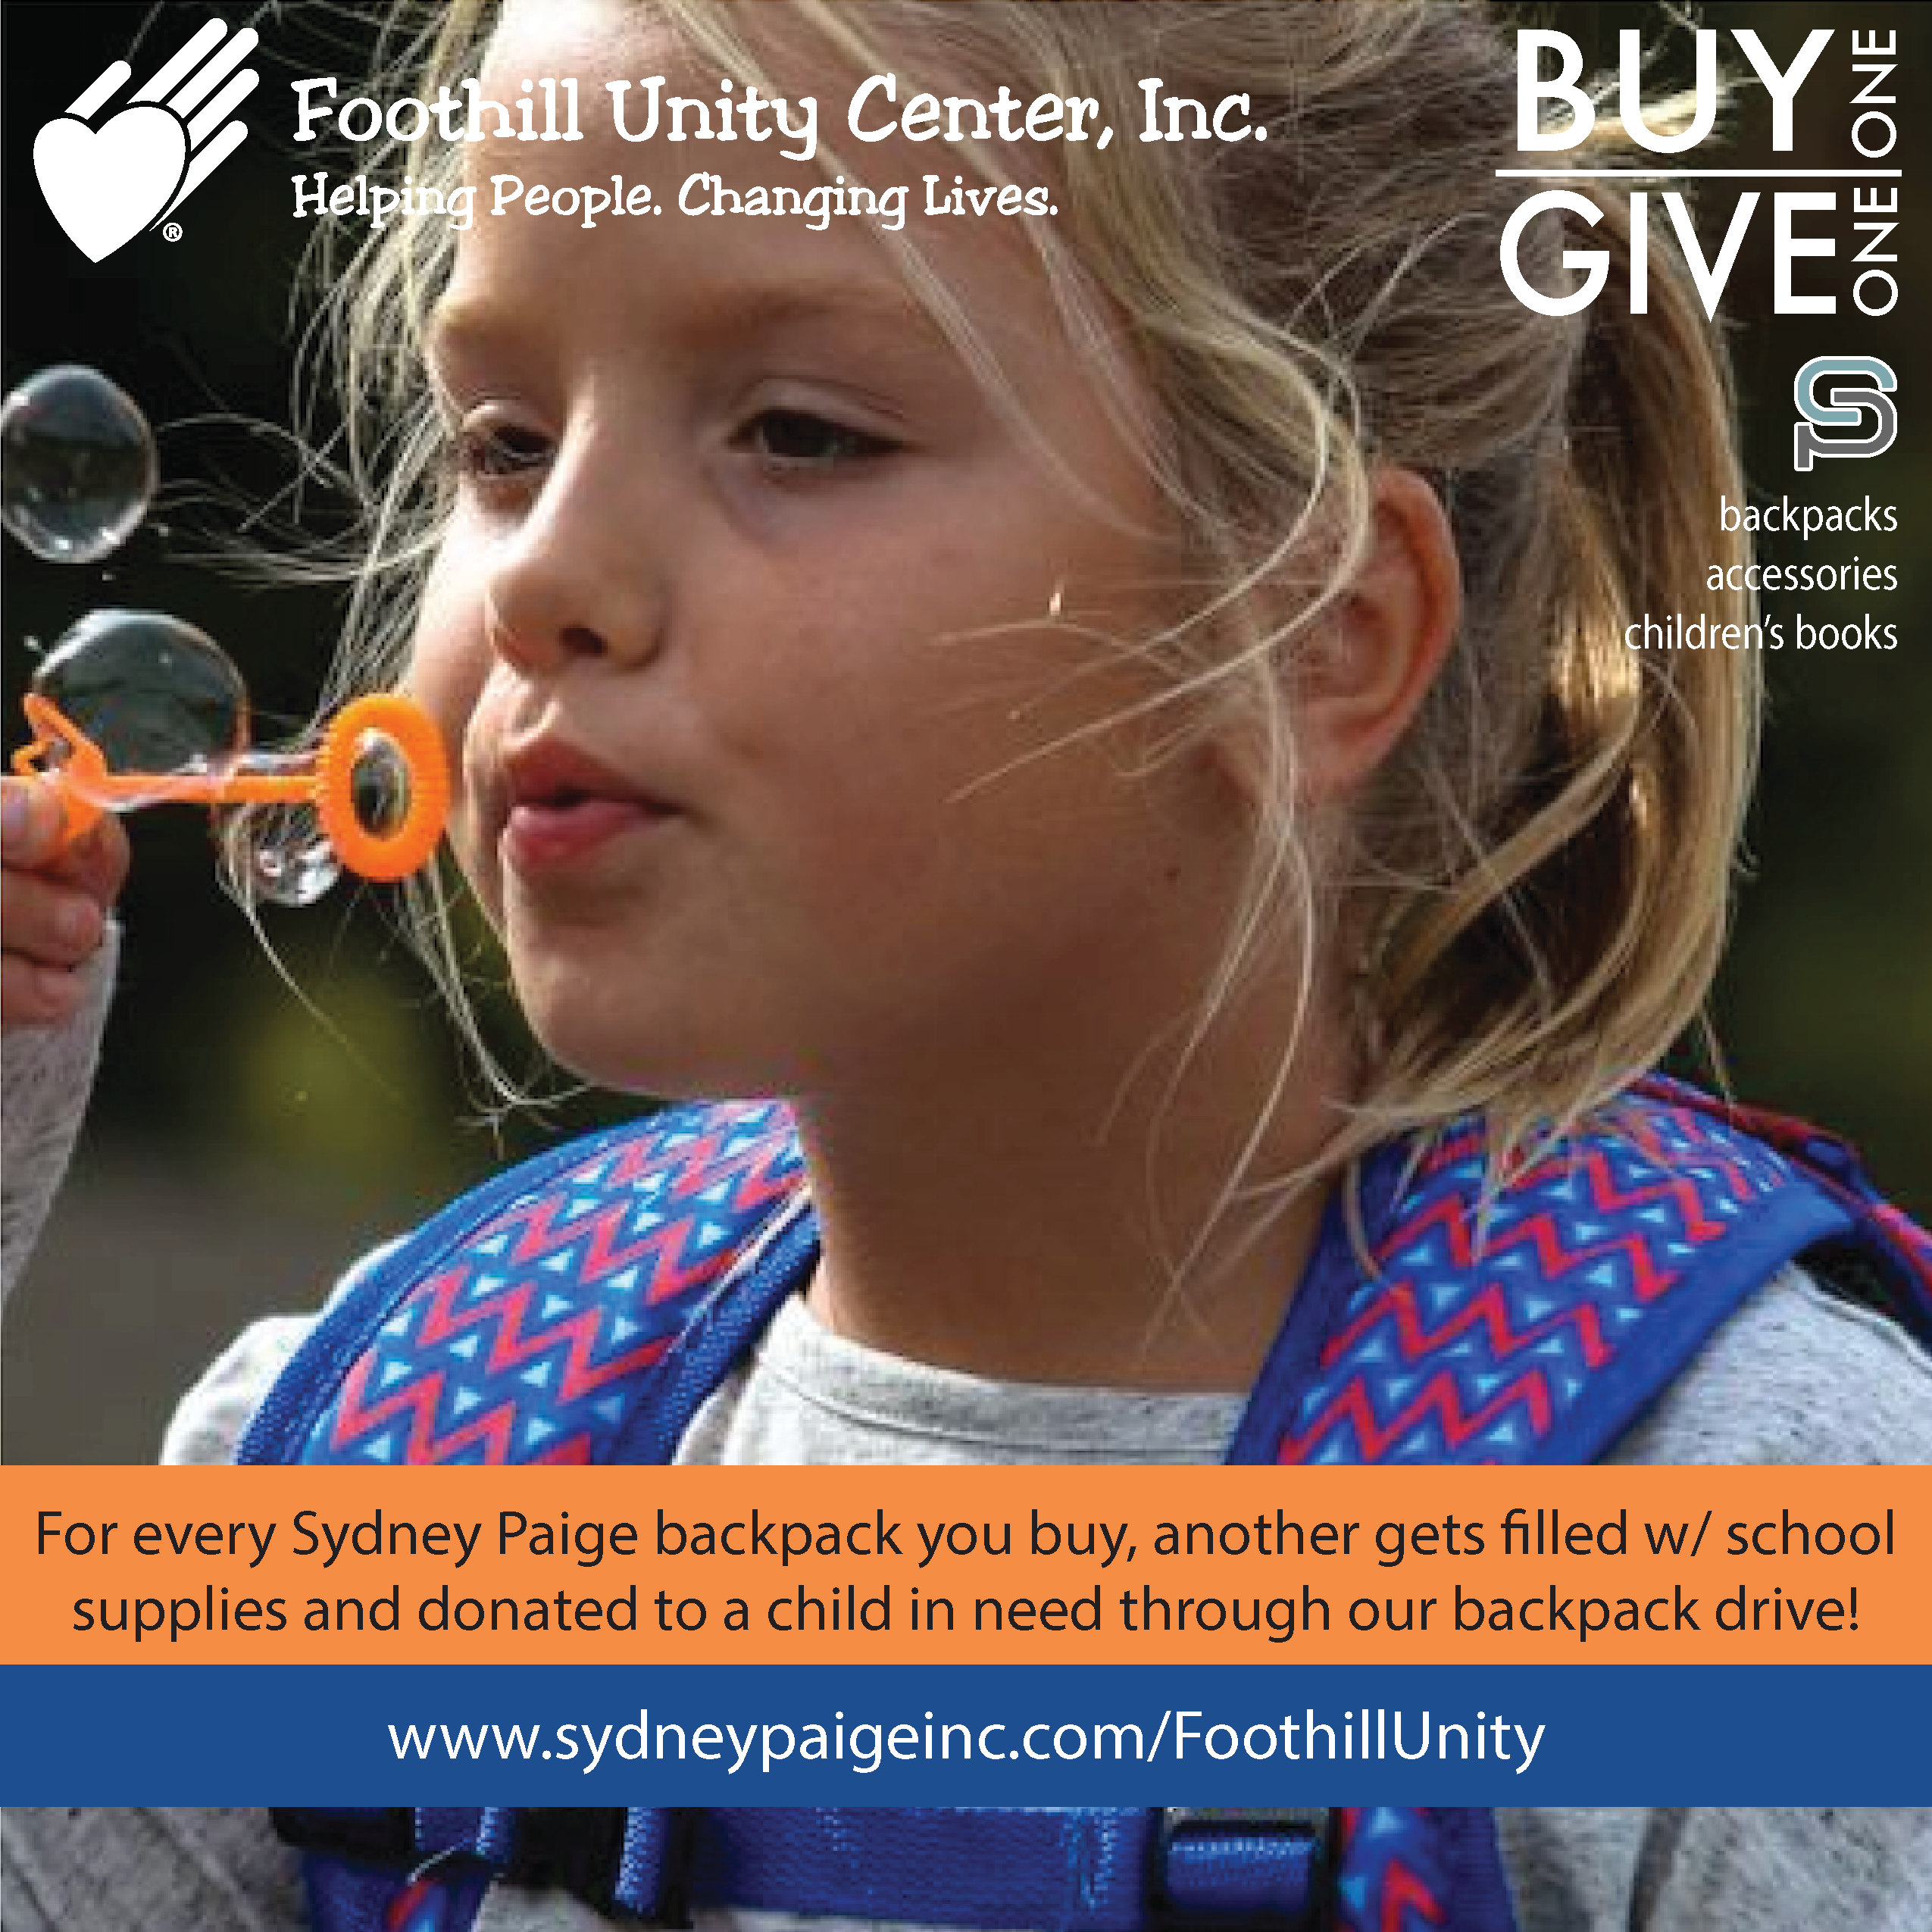 Foothill Unity Center Teams Up With Sydney Paige 174 Inc To